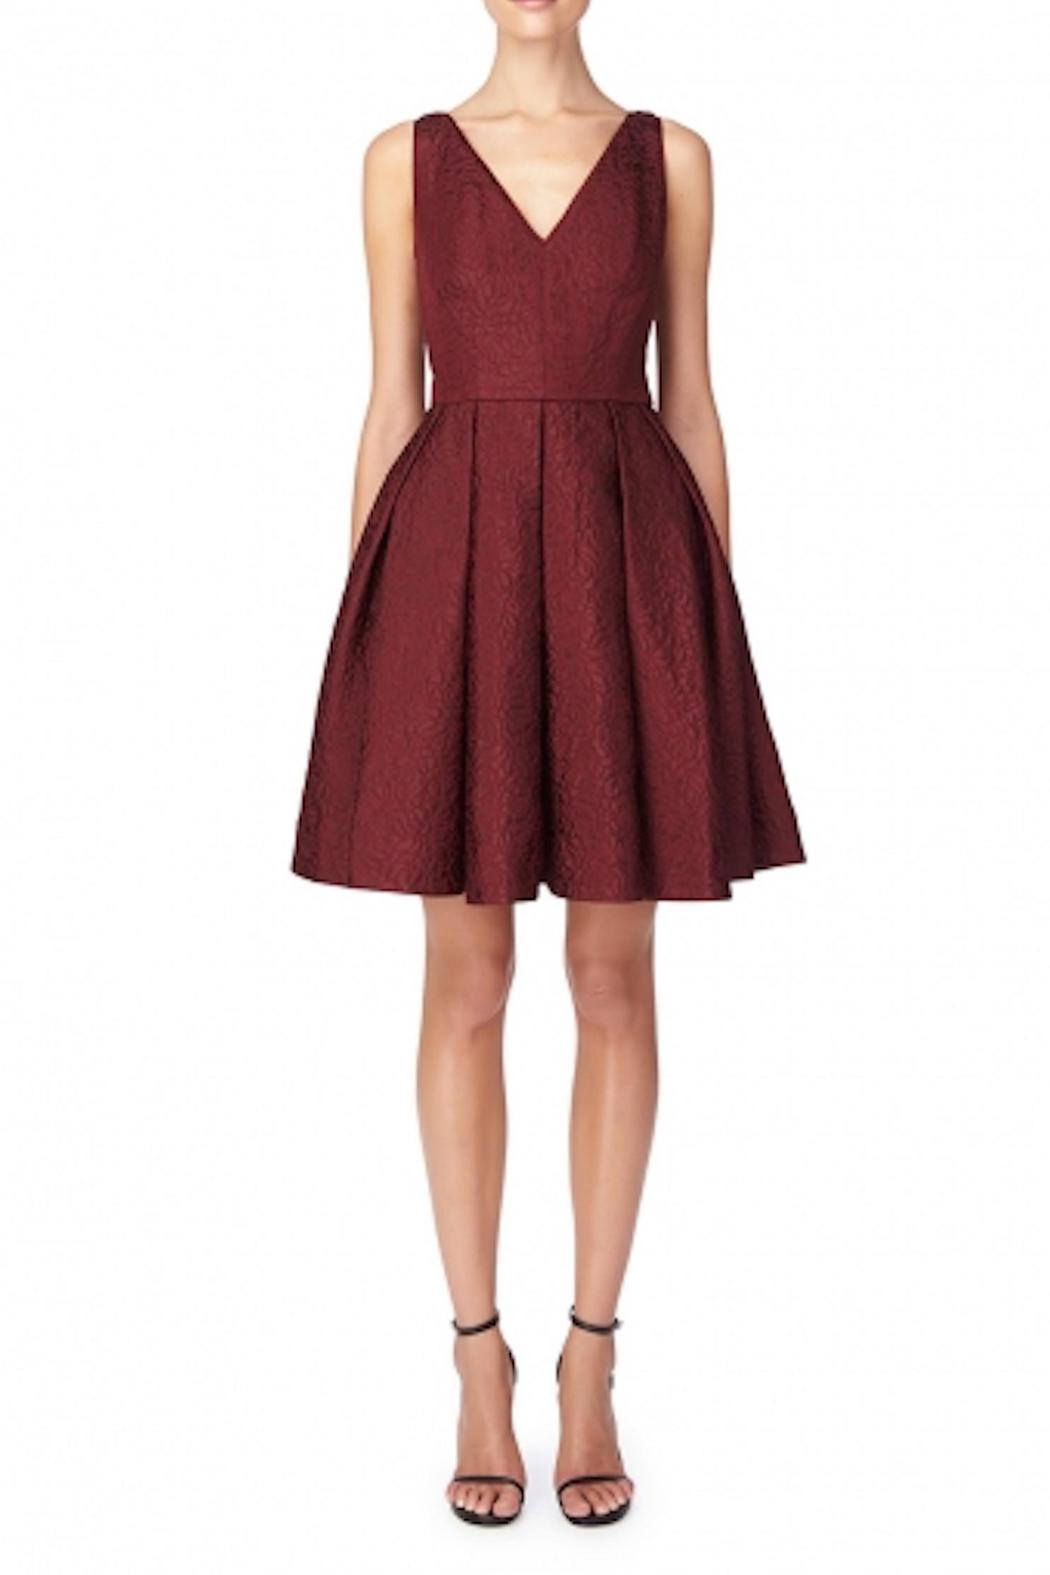 Erin Fetherston Coco Crimson Dress - Front Cropped Image